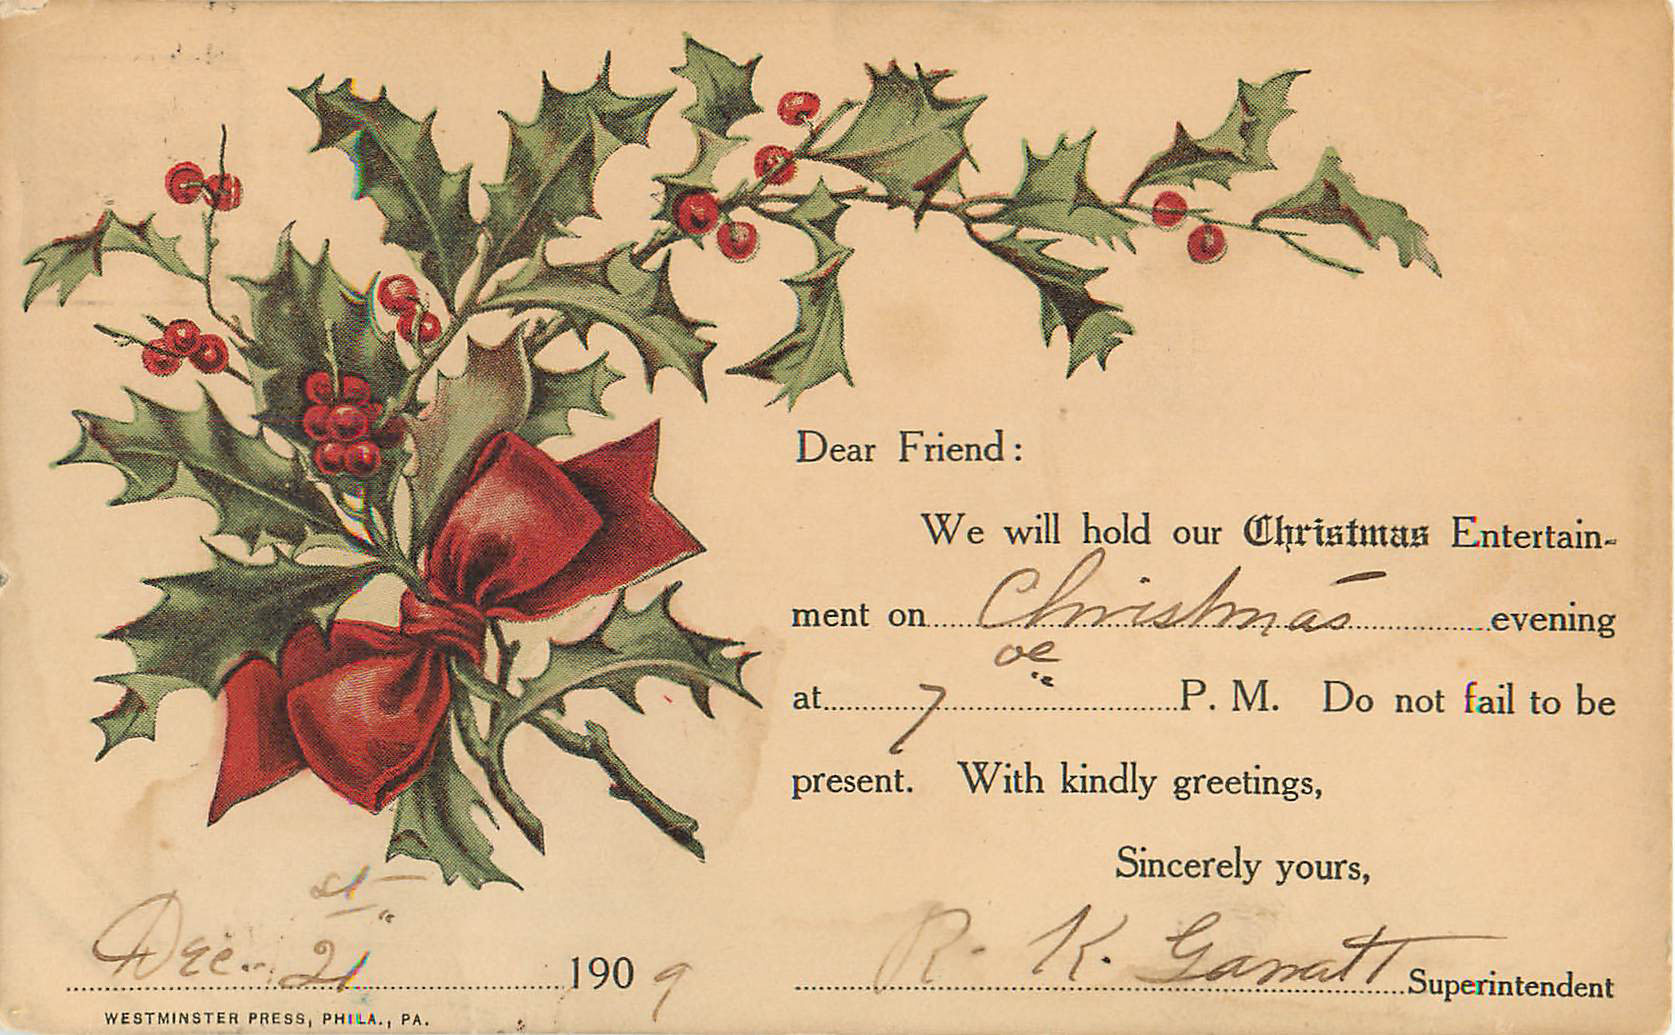 Christmas Entertainment Appointment Card